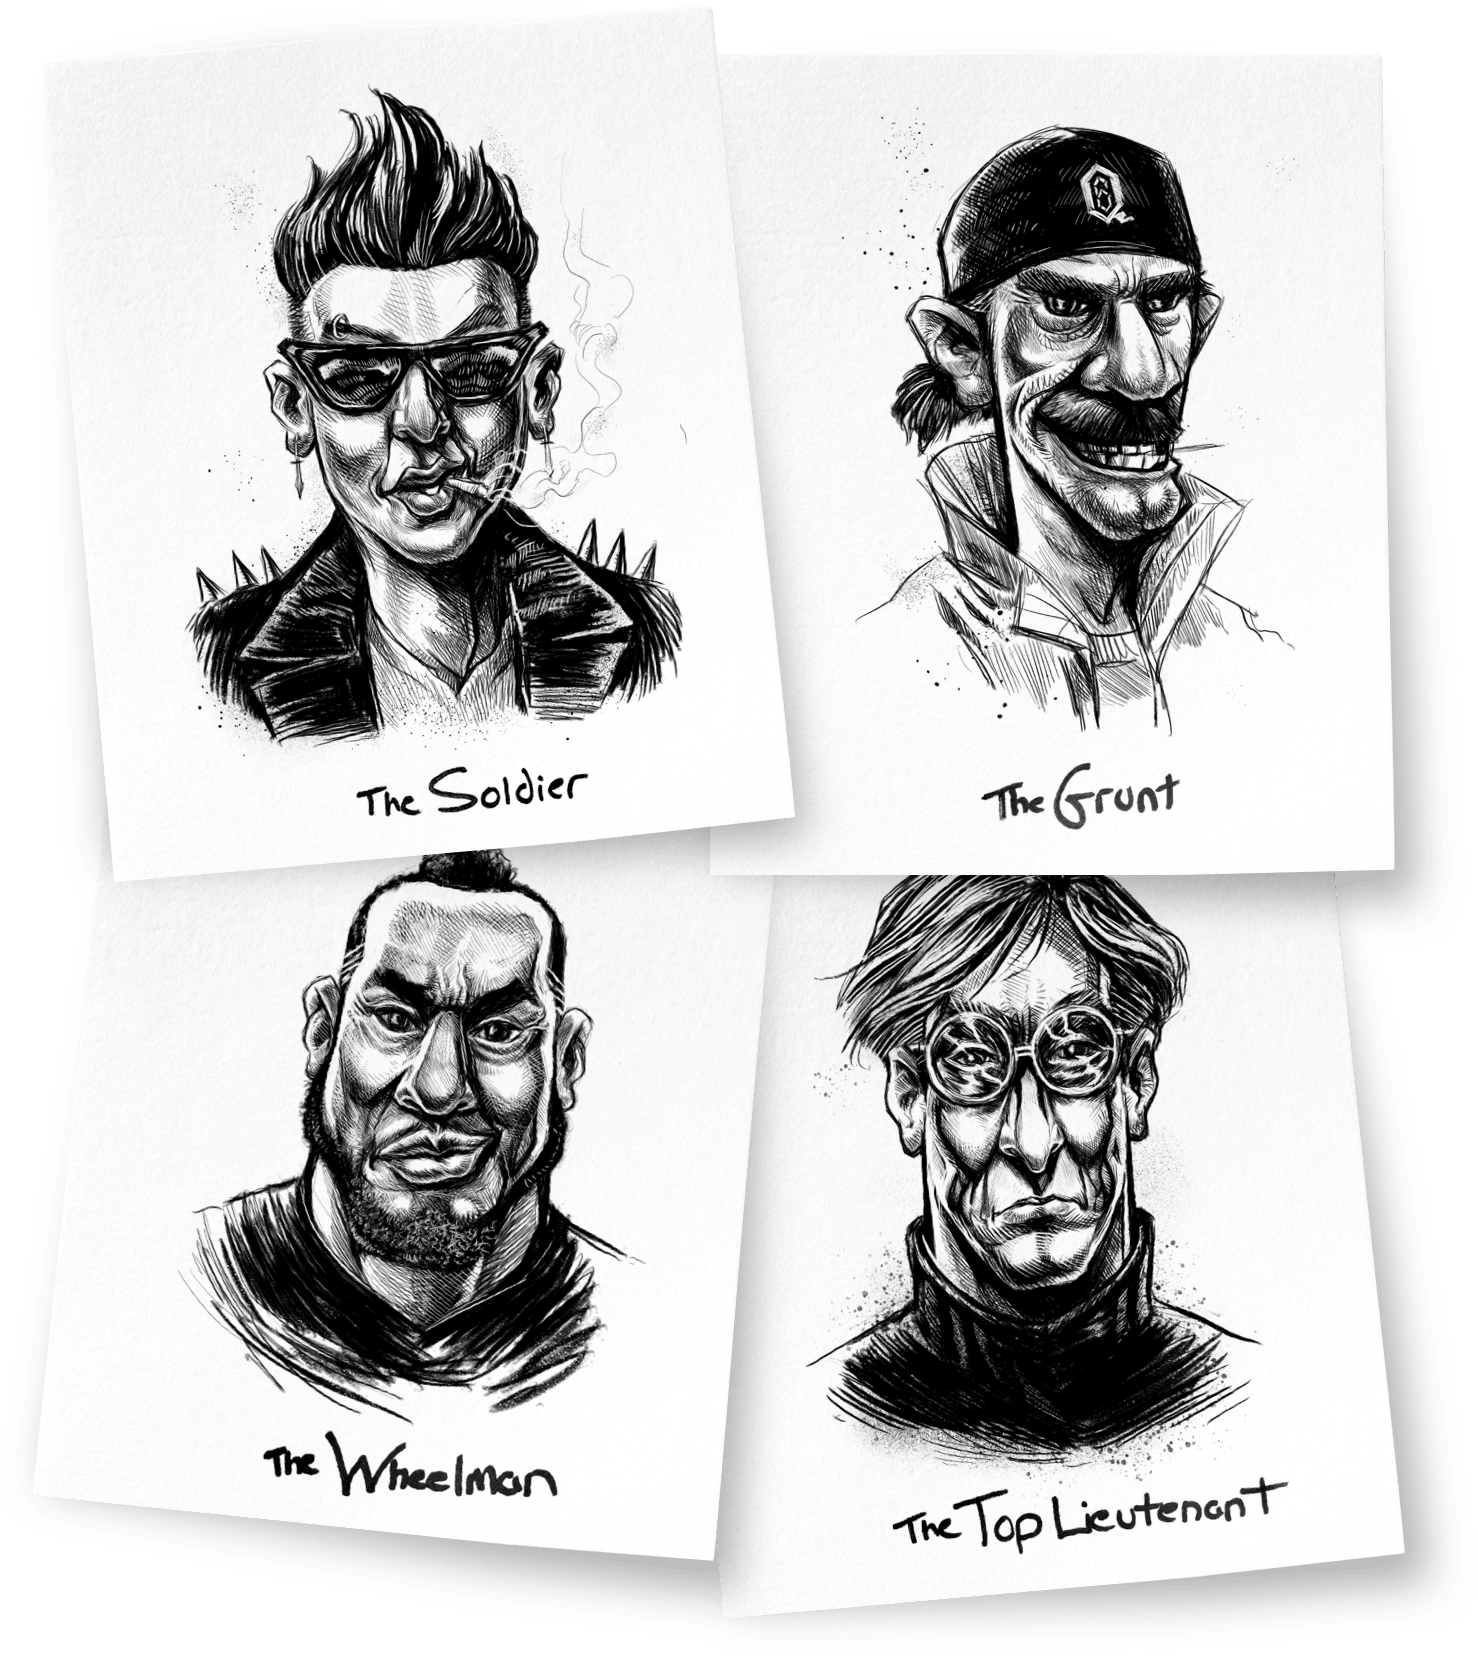 Mugshots of the crew: The Soldier, The Grunt, The Wheelman, The Top Lietenant